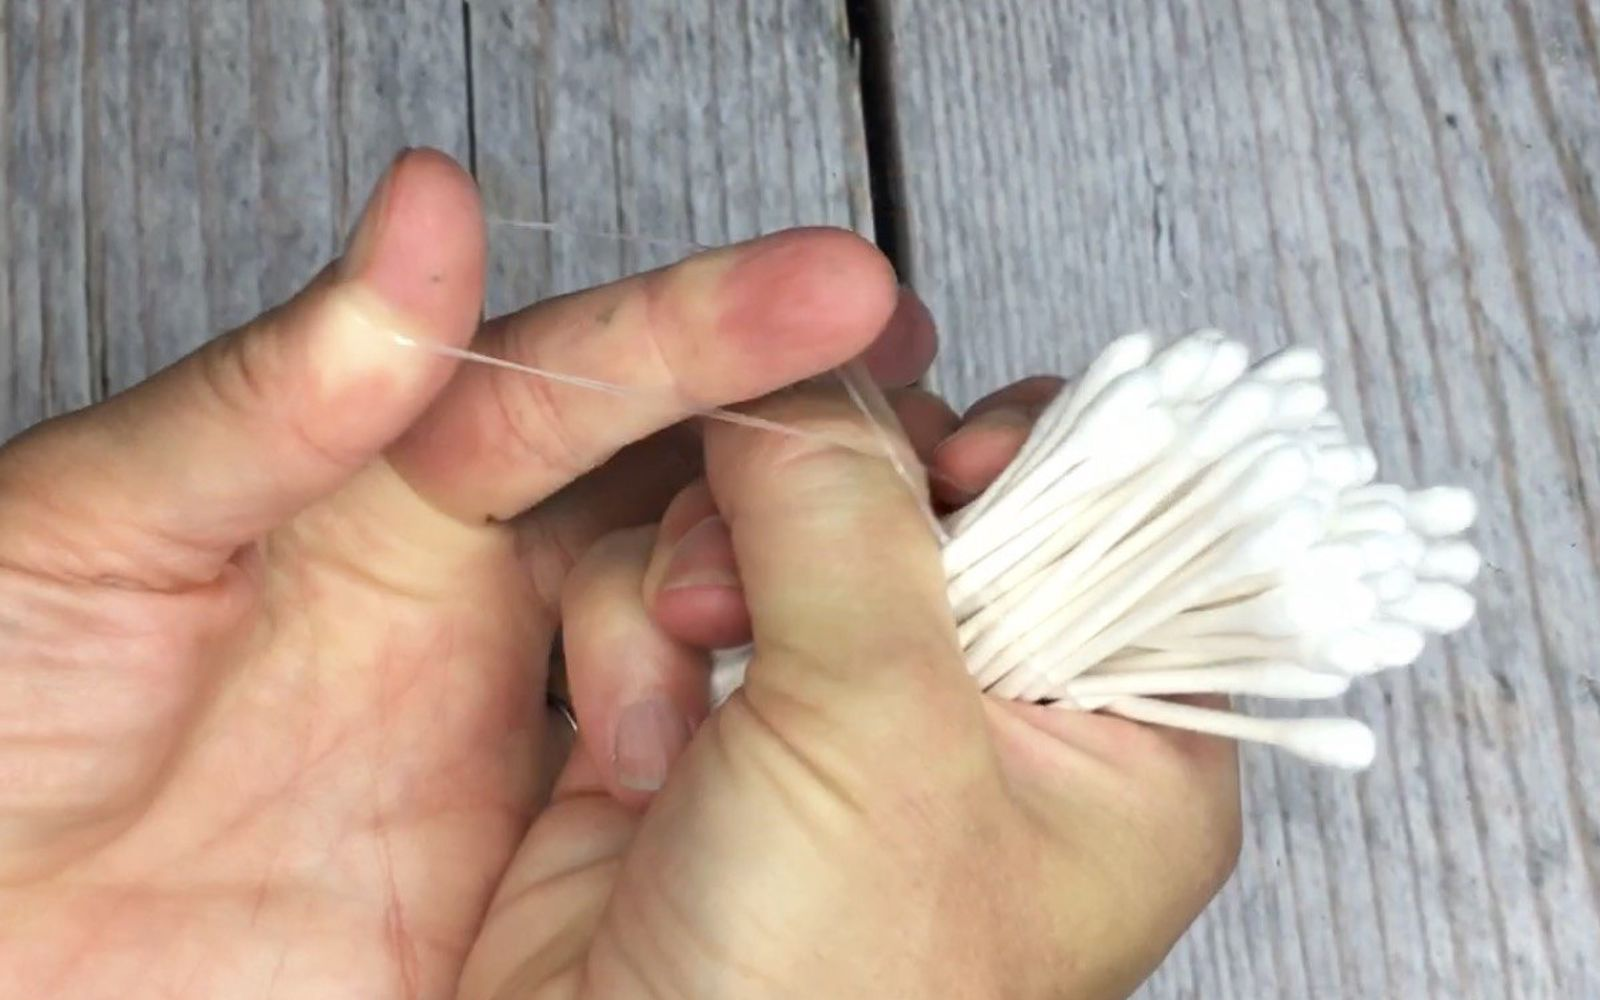 s super cool painting techniques you ve probably never seen, Step 4 Bundle cotton swabs with rubber band